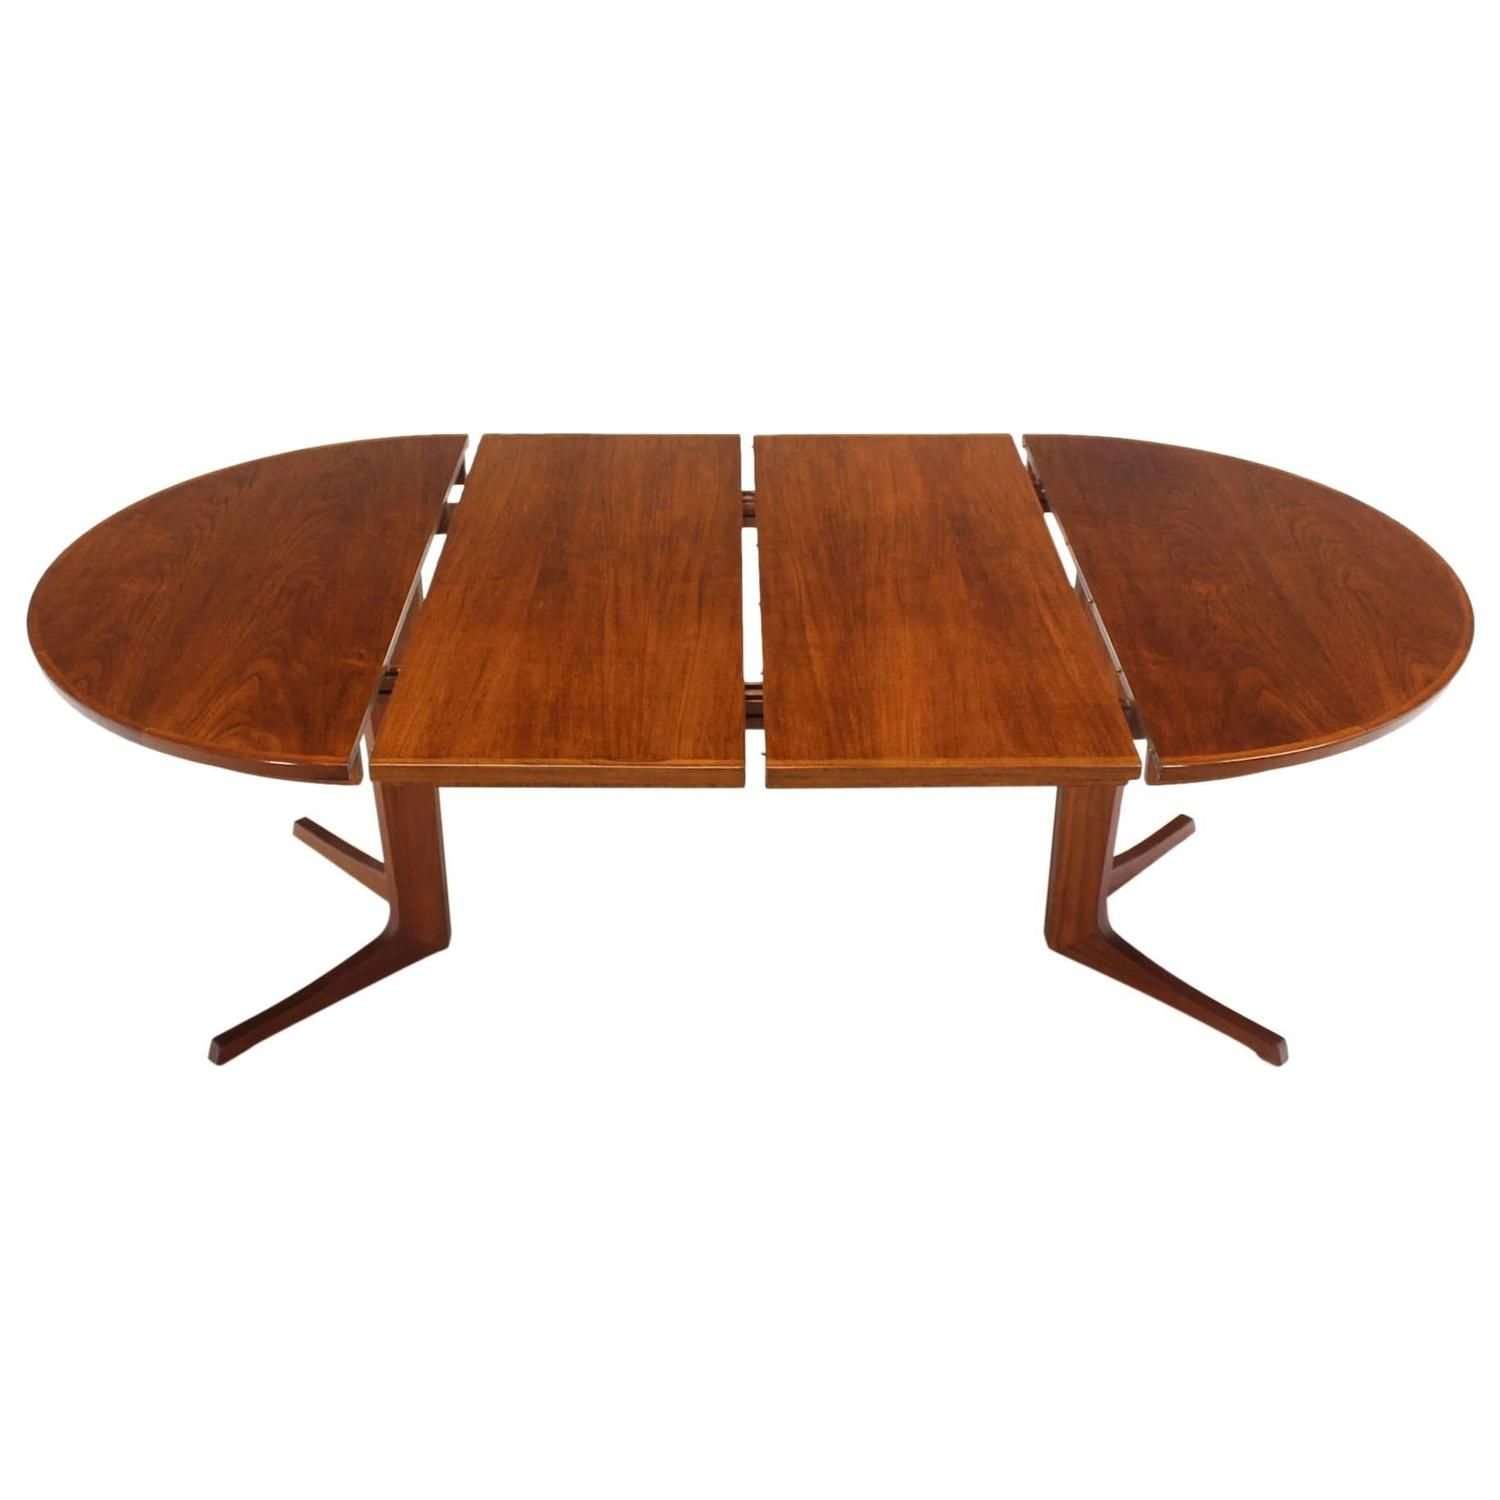 Modern Dining Table With Leaf Round Danish Mid Century Modern Teak Dining Table With Two